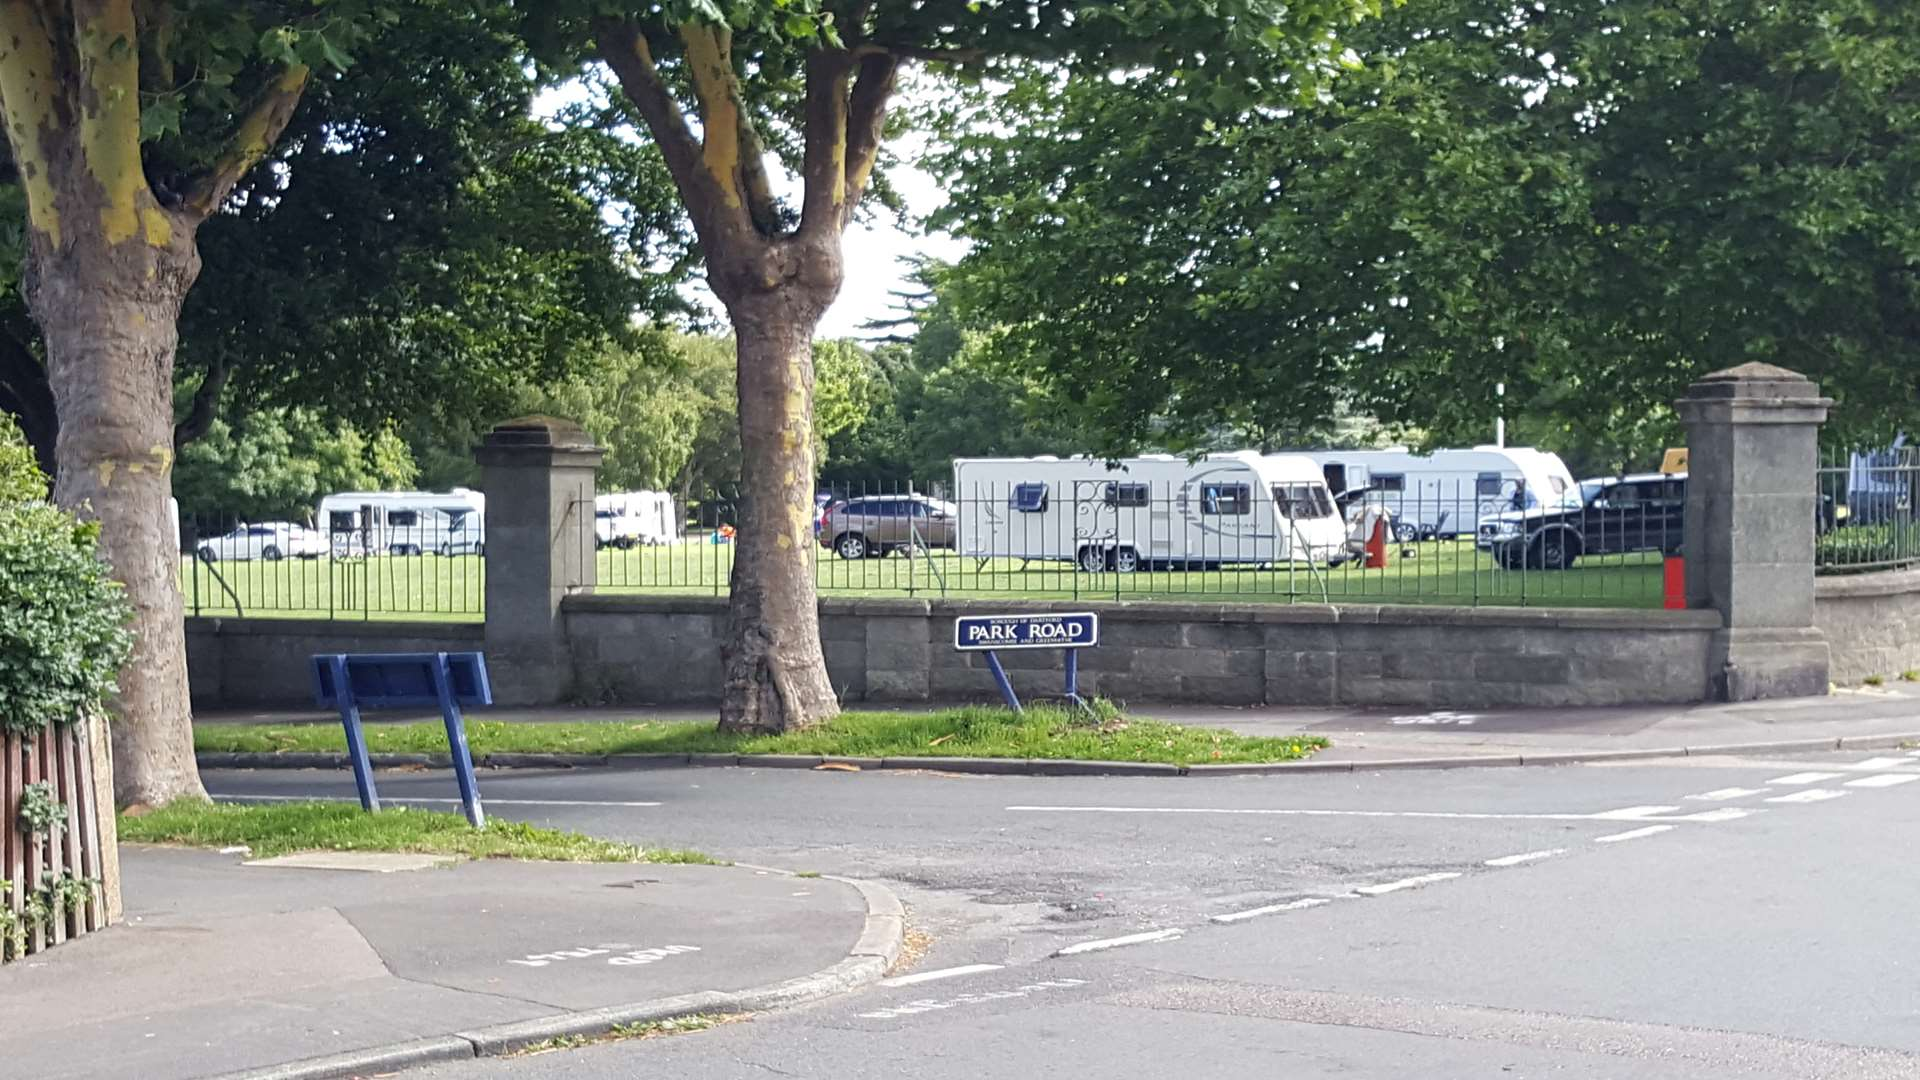 The travellers have set up home at Swanscombe Park.